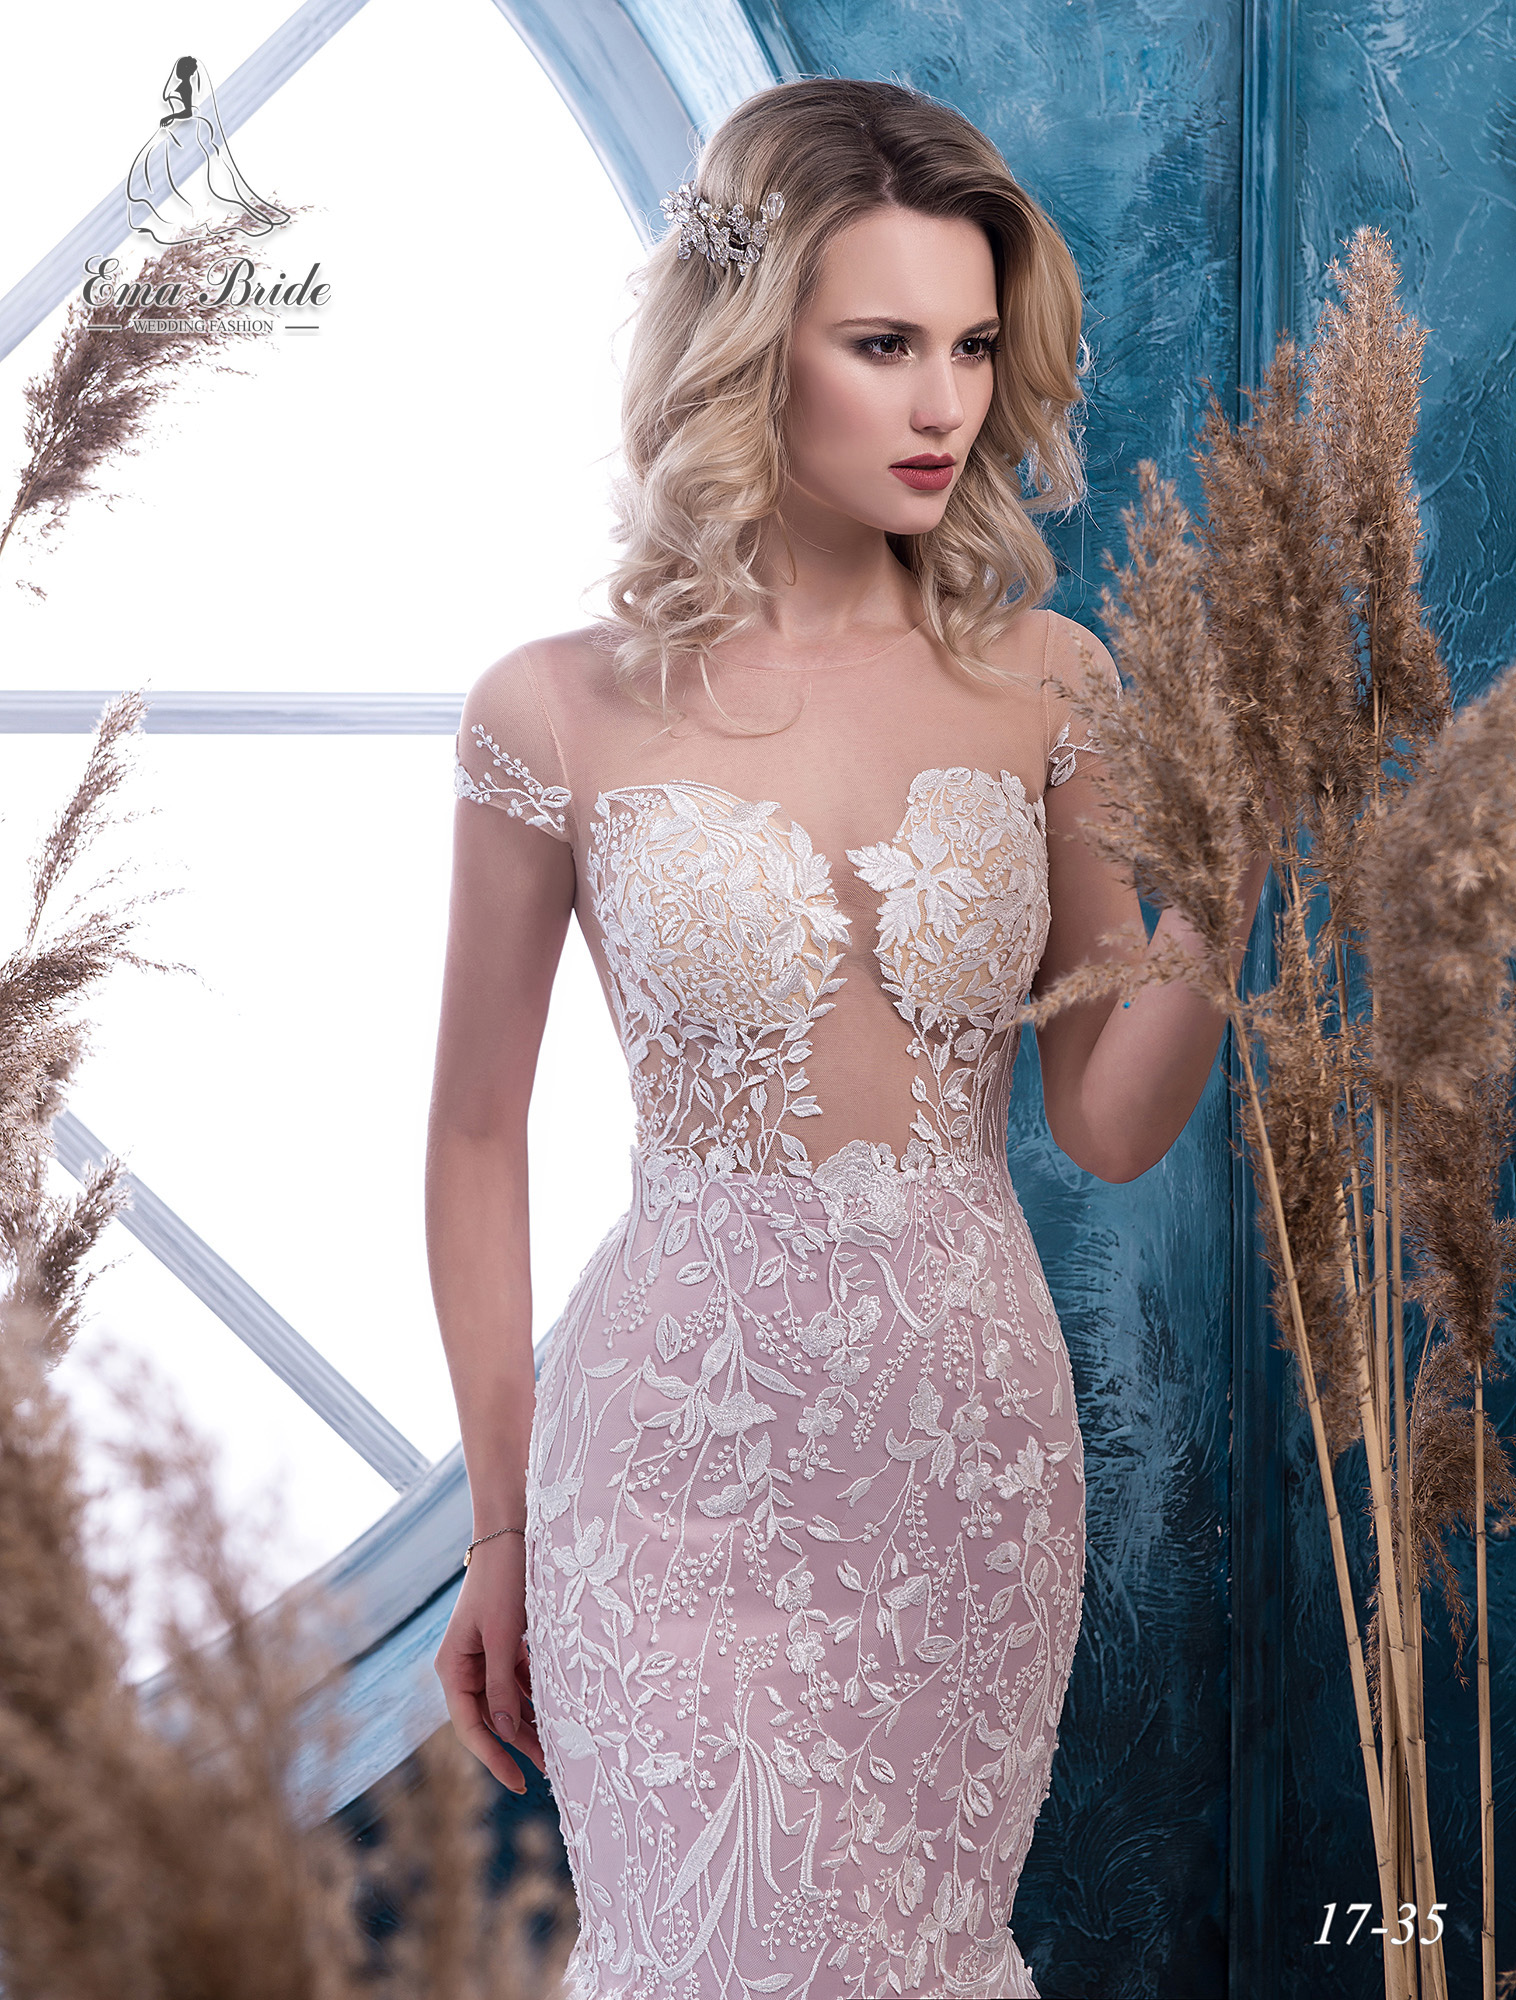 Pink fish silhouette wedding dress-1